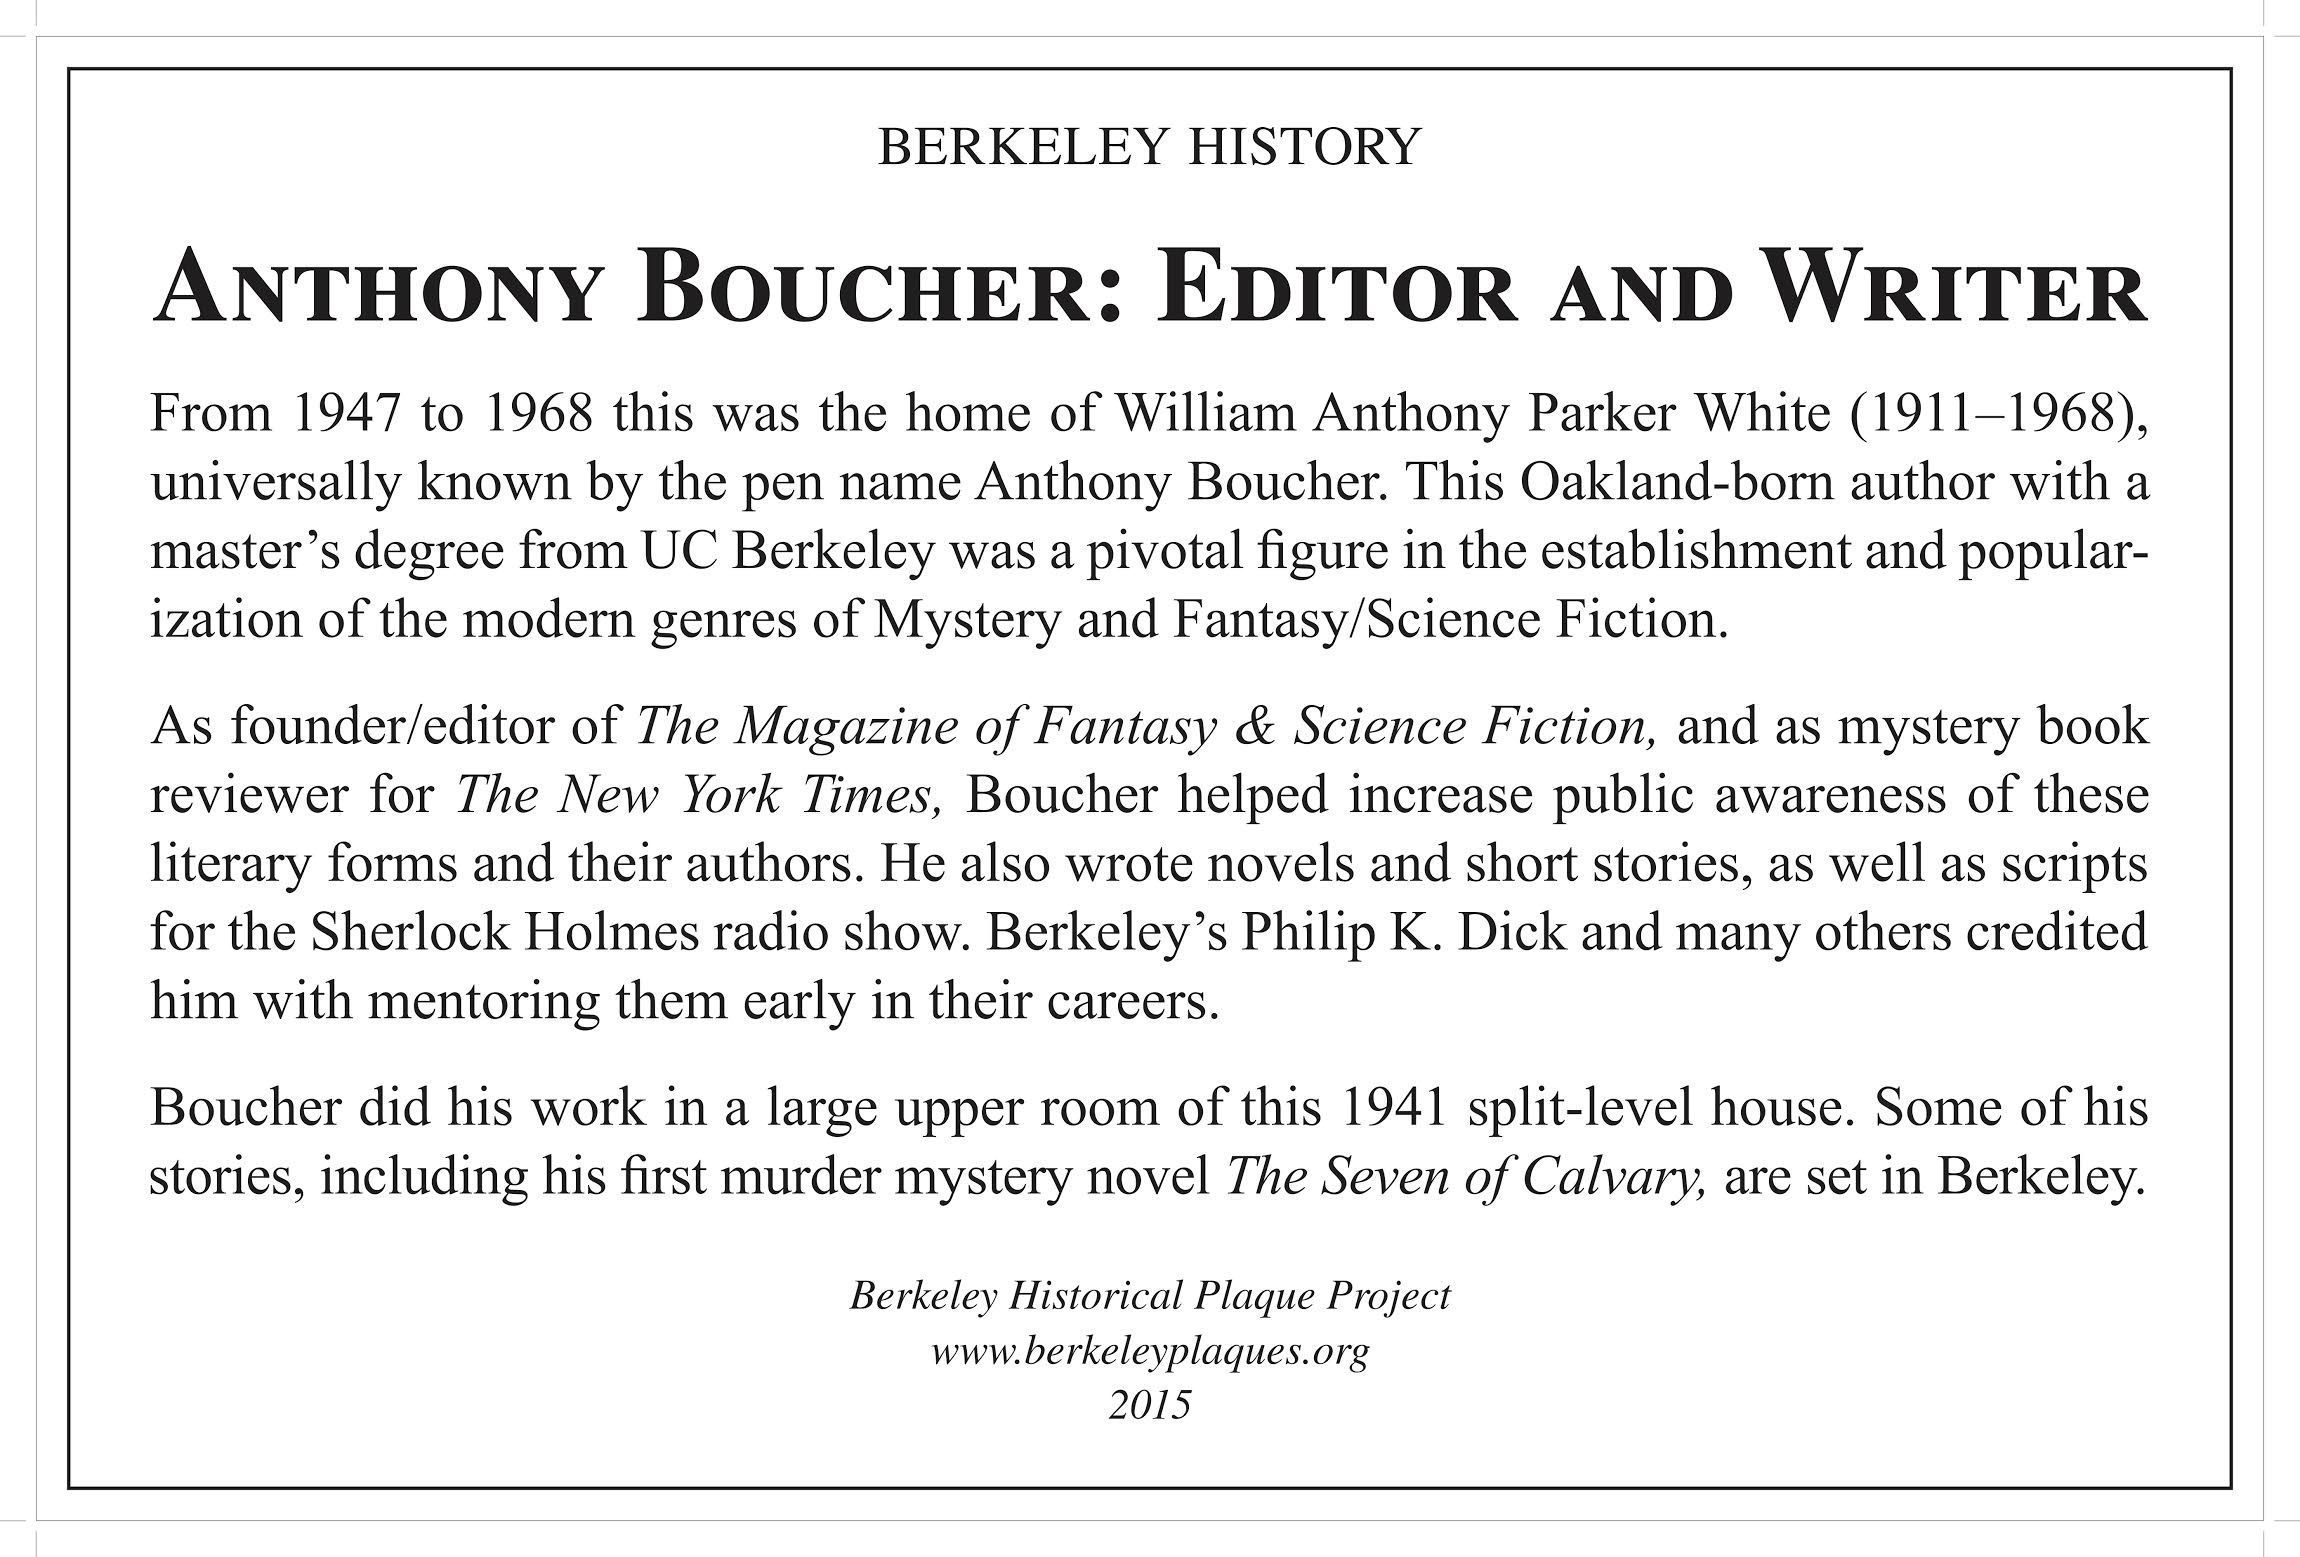 Anthony Boucher: Editor and Writer Plaque